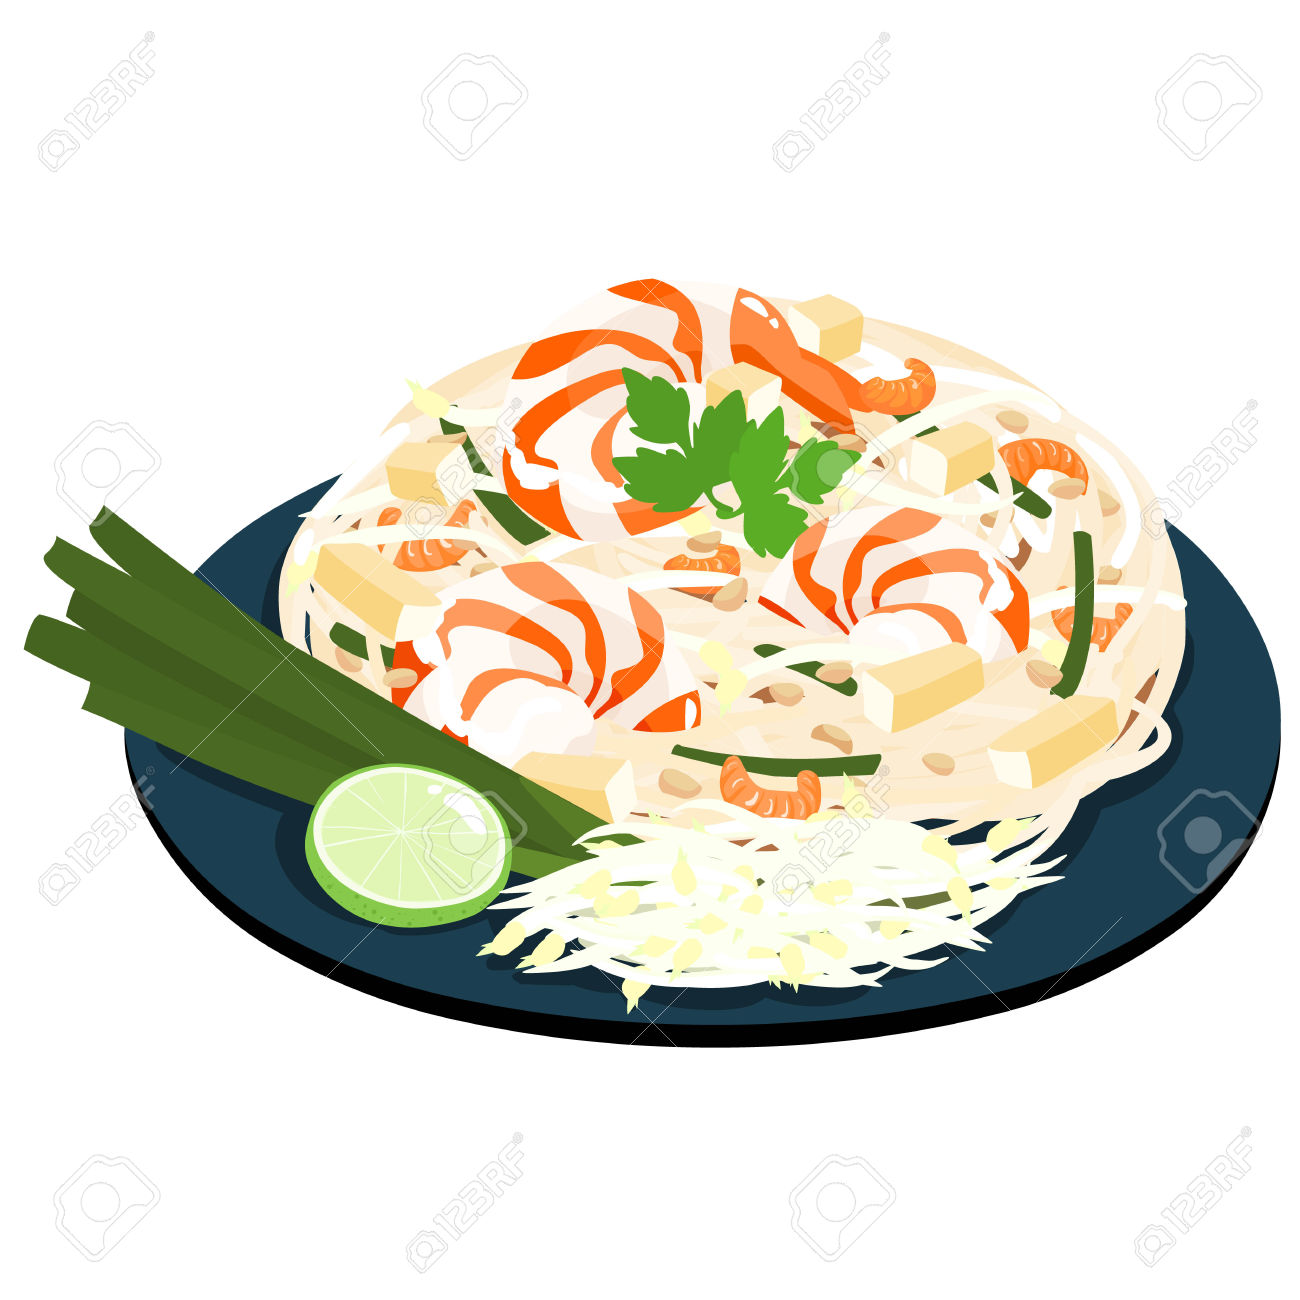 Fried Noodles Popular Thai Food Vector Illustration Royalty Free.